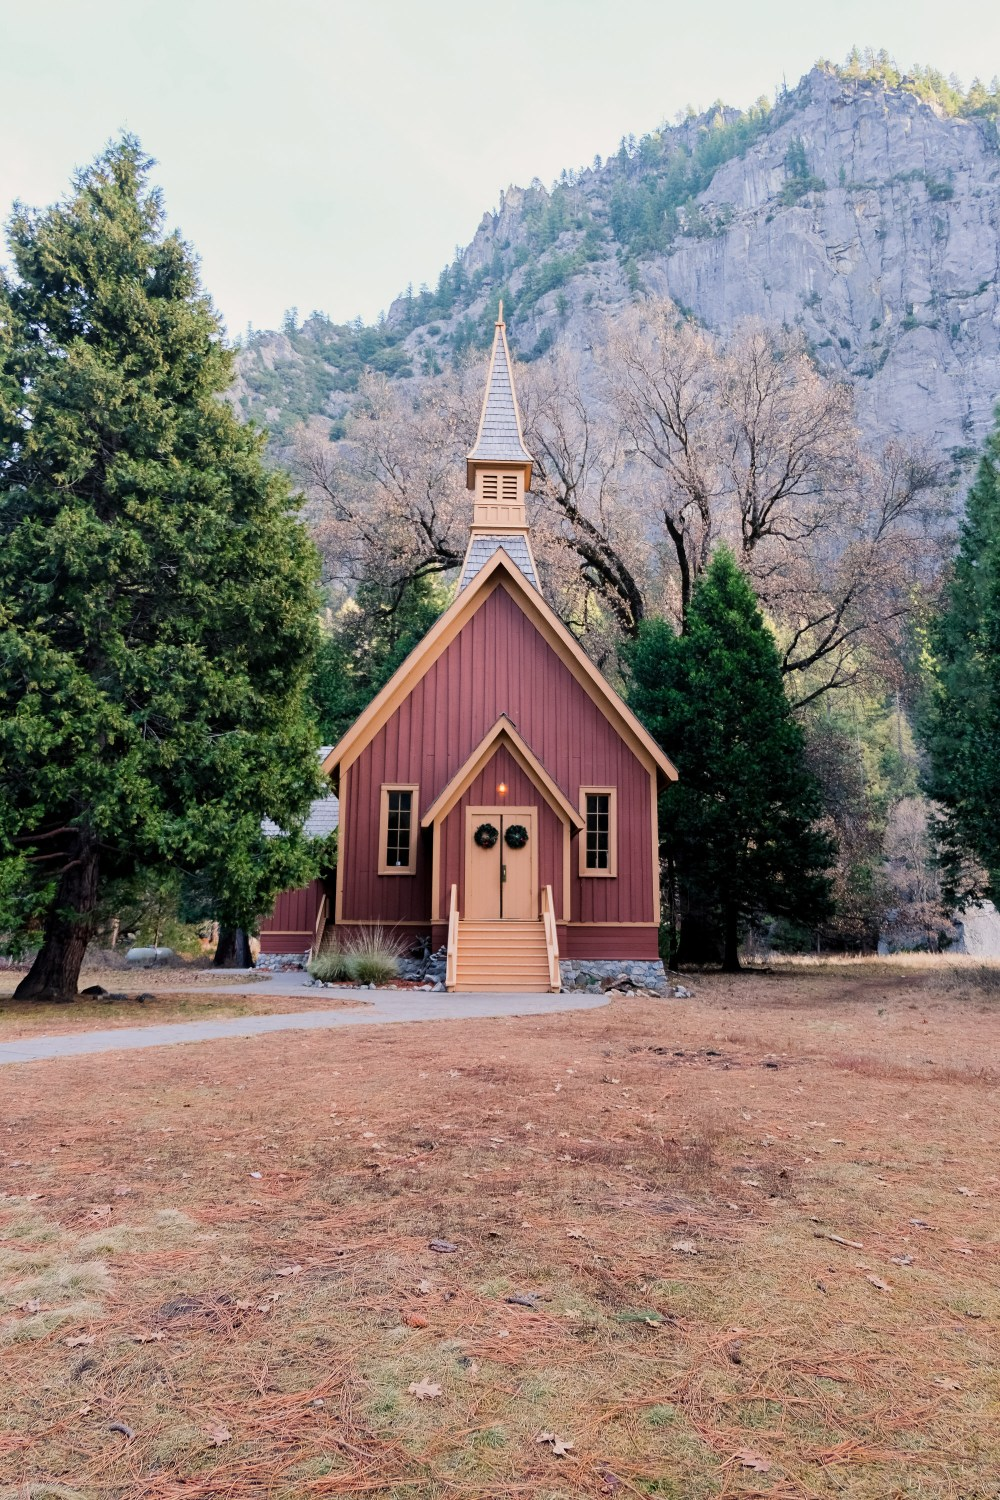 Chapel // Things To Do in Yosemite in Winter